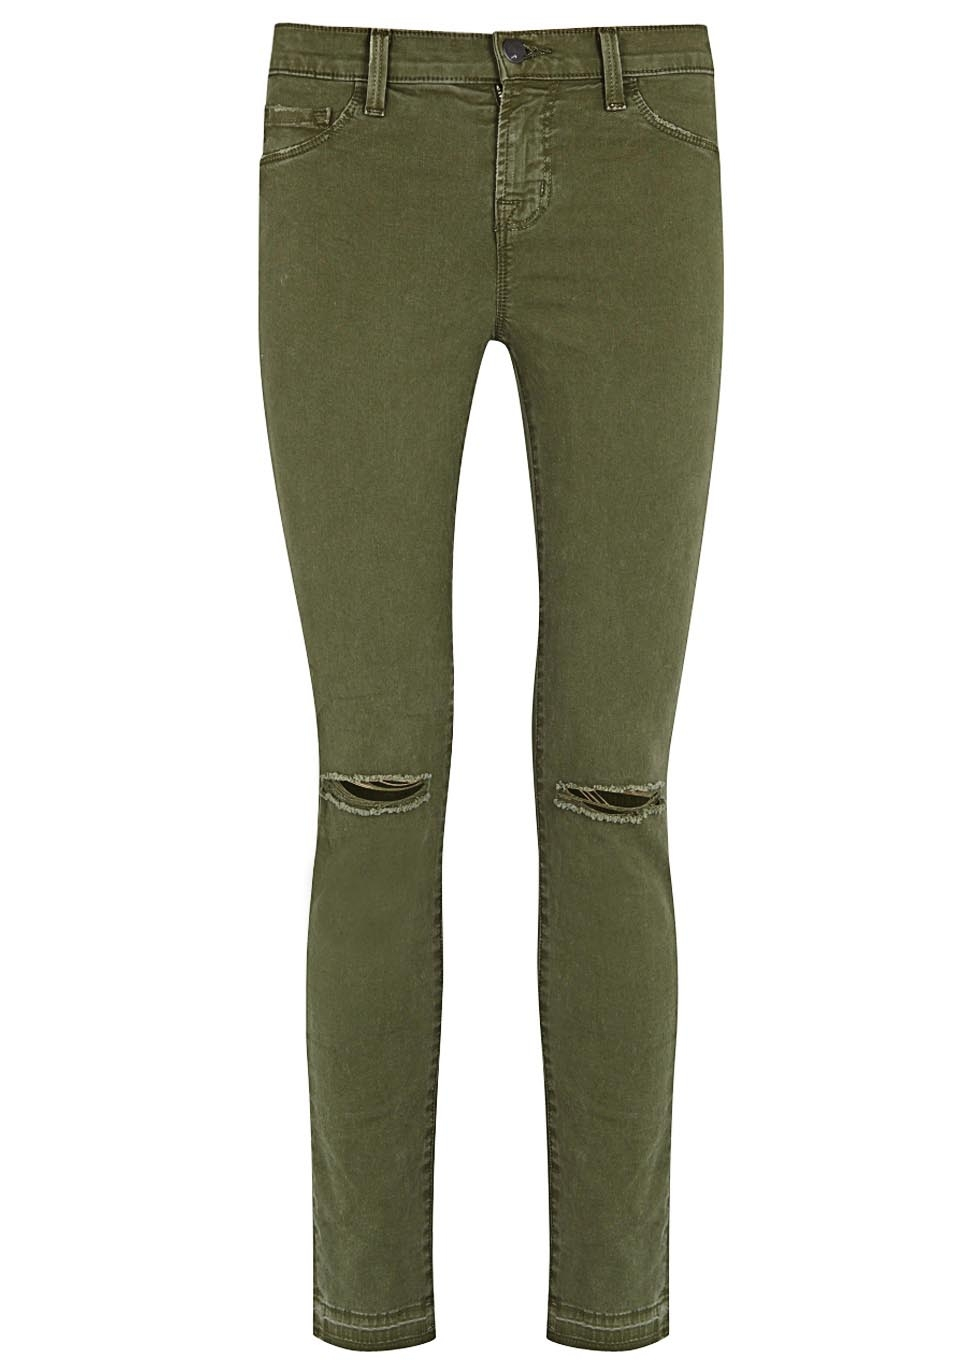 "Shop American Eagle Outfitters for men's and women's jeans, T's, shoes and more. Women's Jeans View All Our slimmest pant is the Patch Pocket Linen Skinny Pant, available in olive, stone or grey. In a soft cotton blend linen, they sit low on the waist and have a 6"" leg opening."